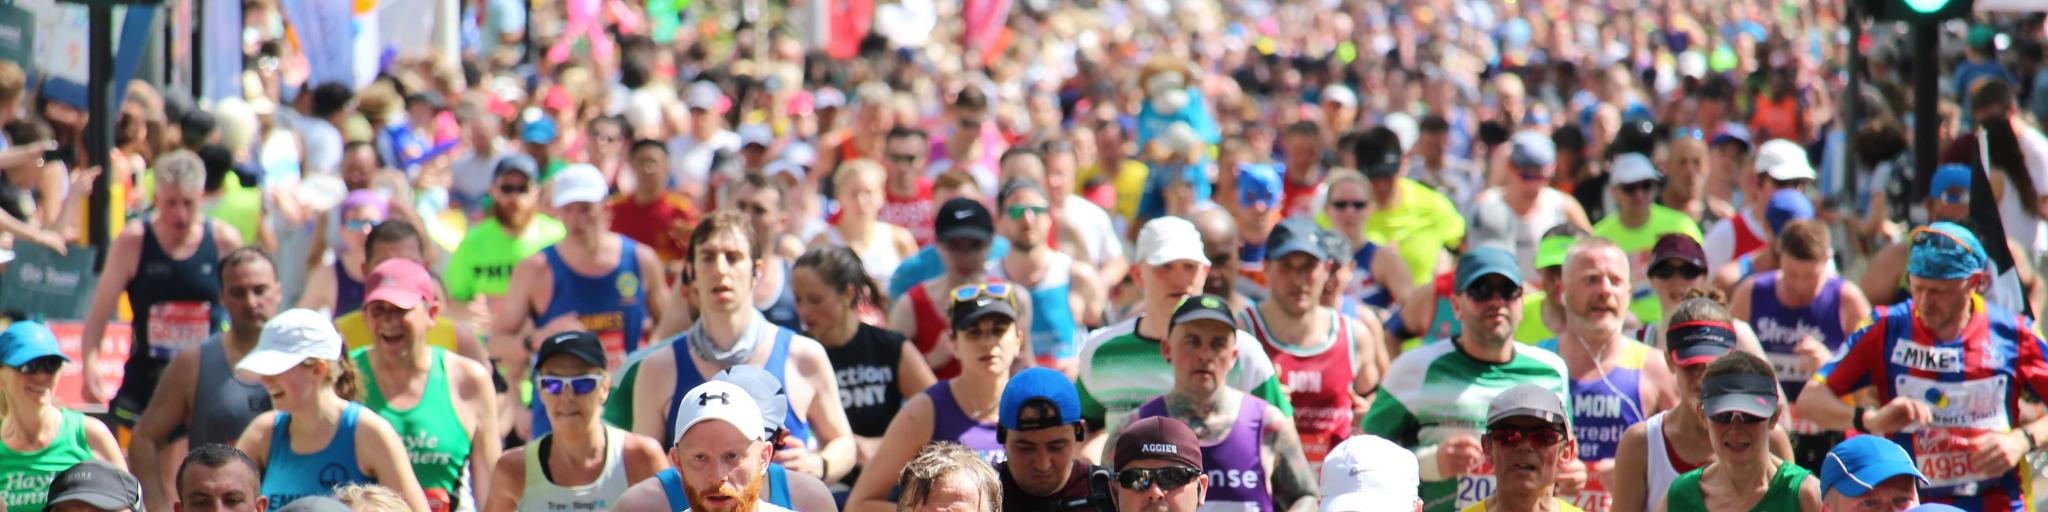 Hundreds of runners at the London Marathon on a sunny day